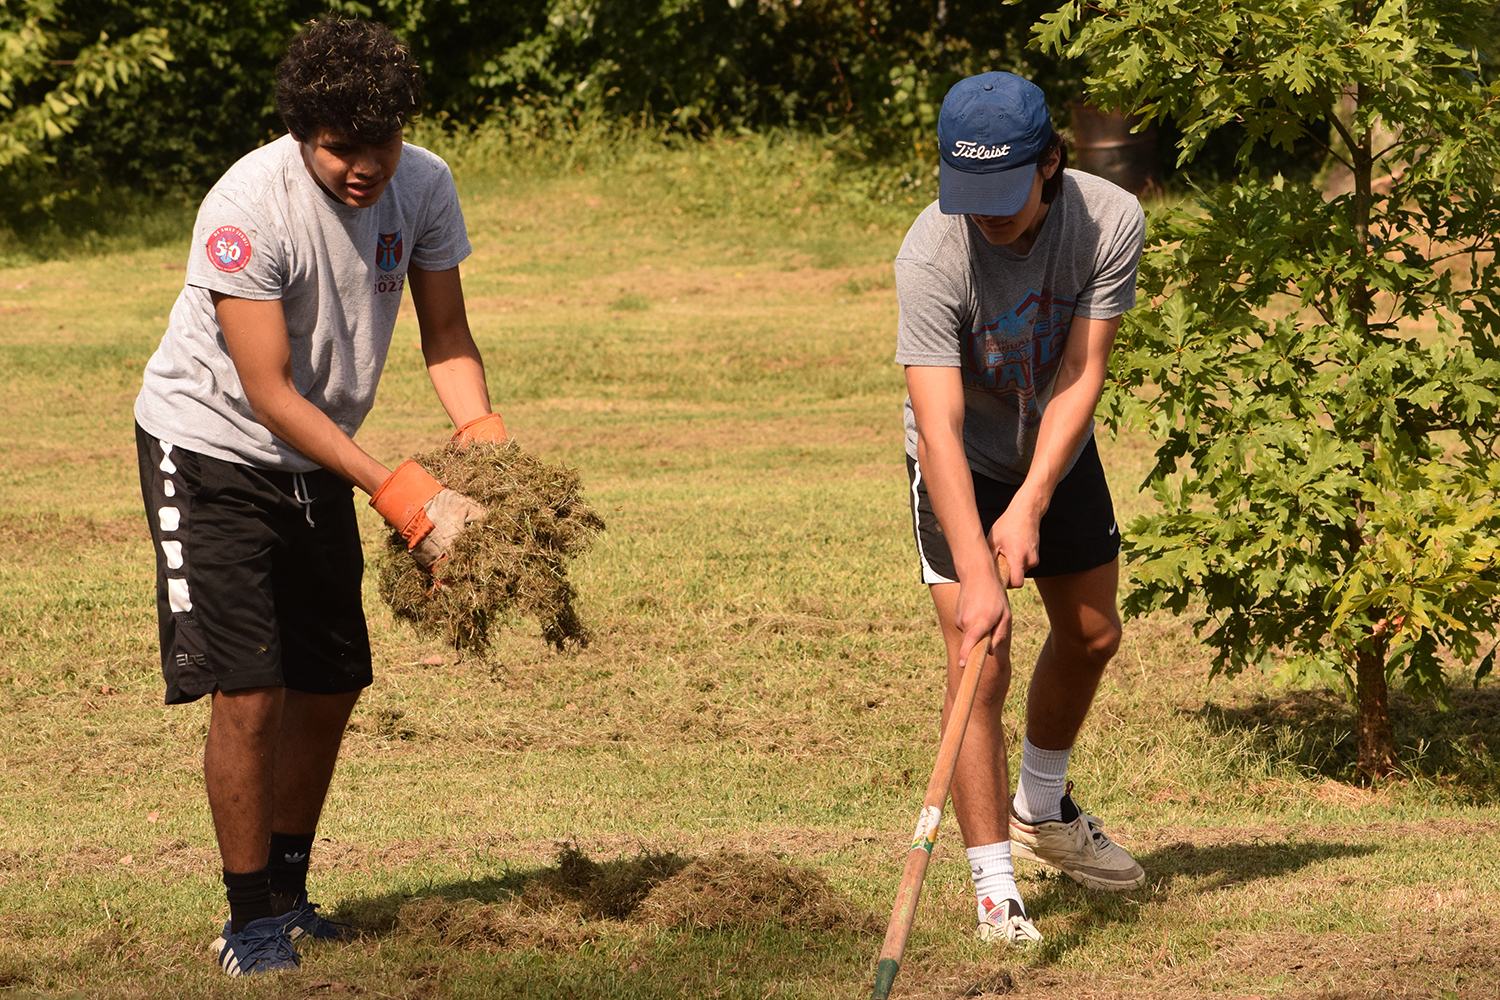 Sophomores Peter Molitor and Dominic Genovese take part in the service portion of Ascent.